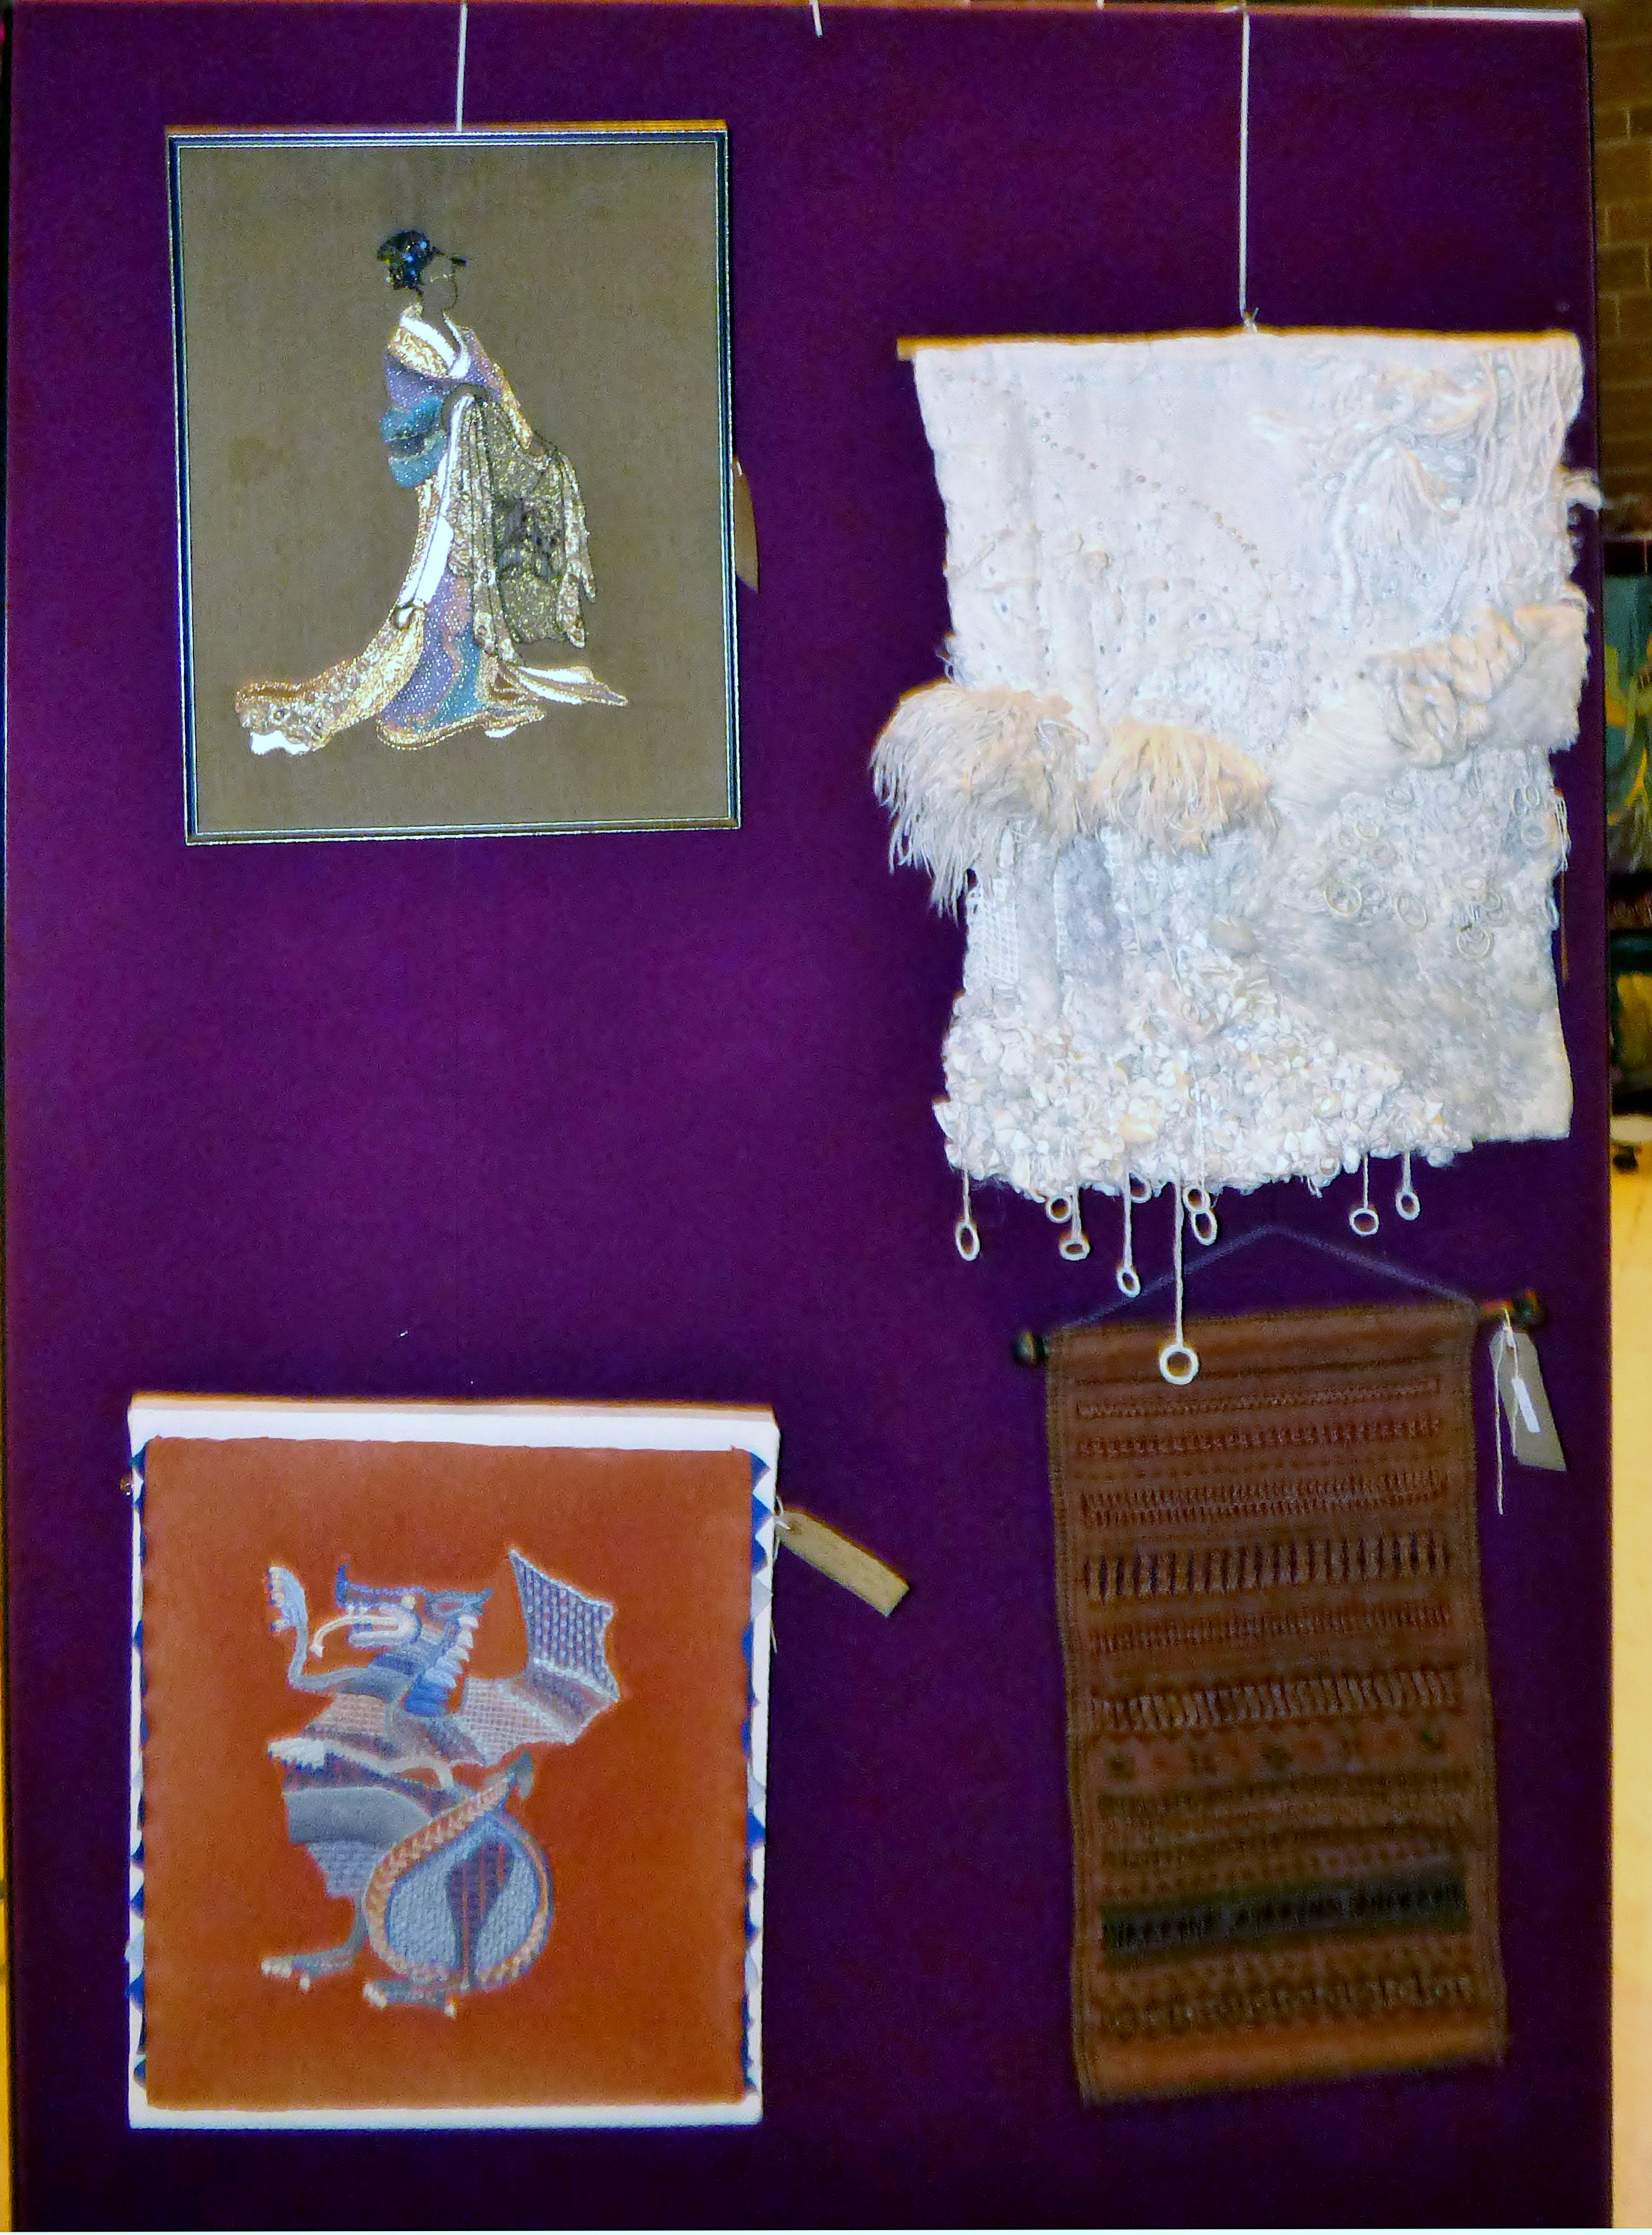 AFTER UNTAMARO by June Hodgkiss, SNOW STORM by Rubina Porter MBE, WELSH DRAGON by Marie stacey and LINEN SAMPLER by dora Carline at 60 Glorious Years exhibition 2016